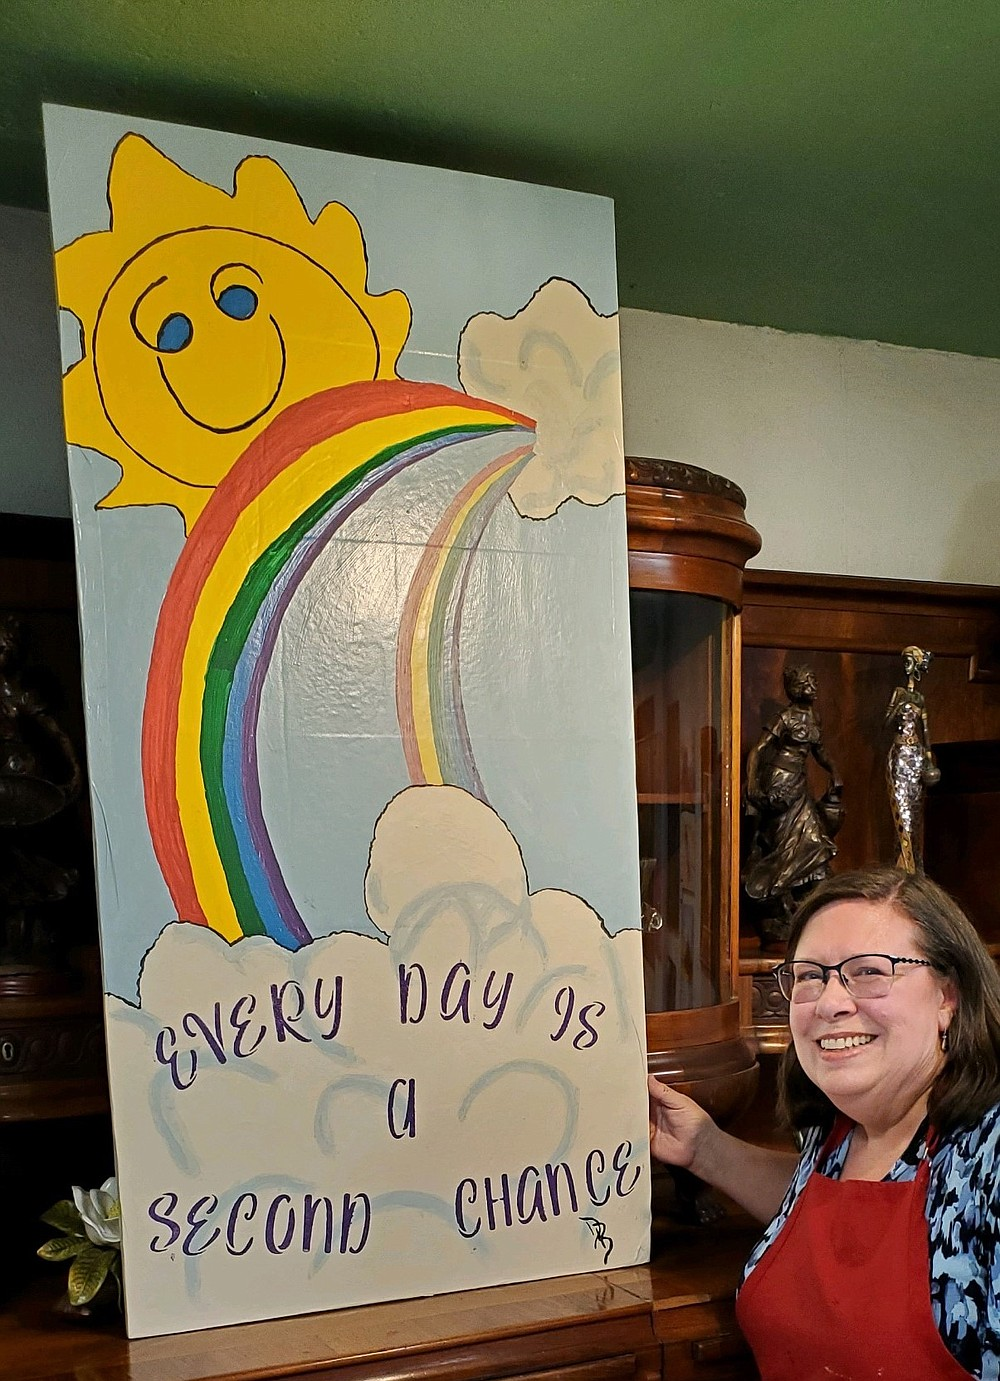 Submitted photo Denise Bolster, a local breast cancer survivor, stands near an inspirational painting with a creed she believes about life, Every day is a second chance.